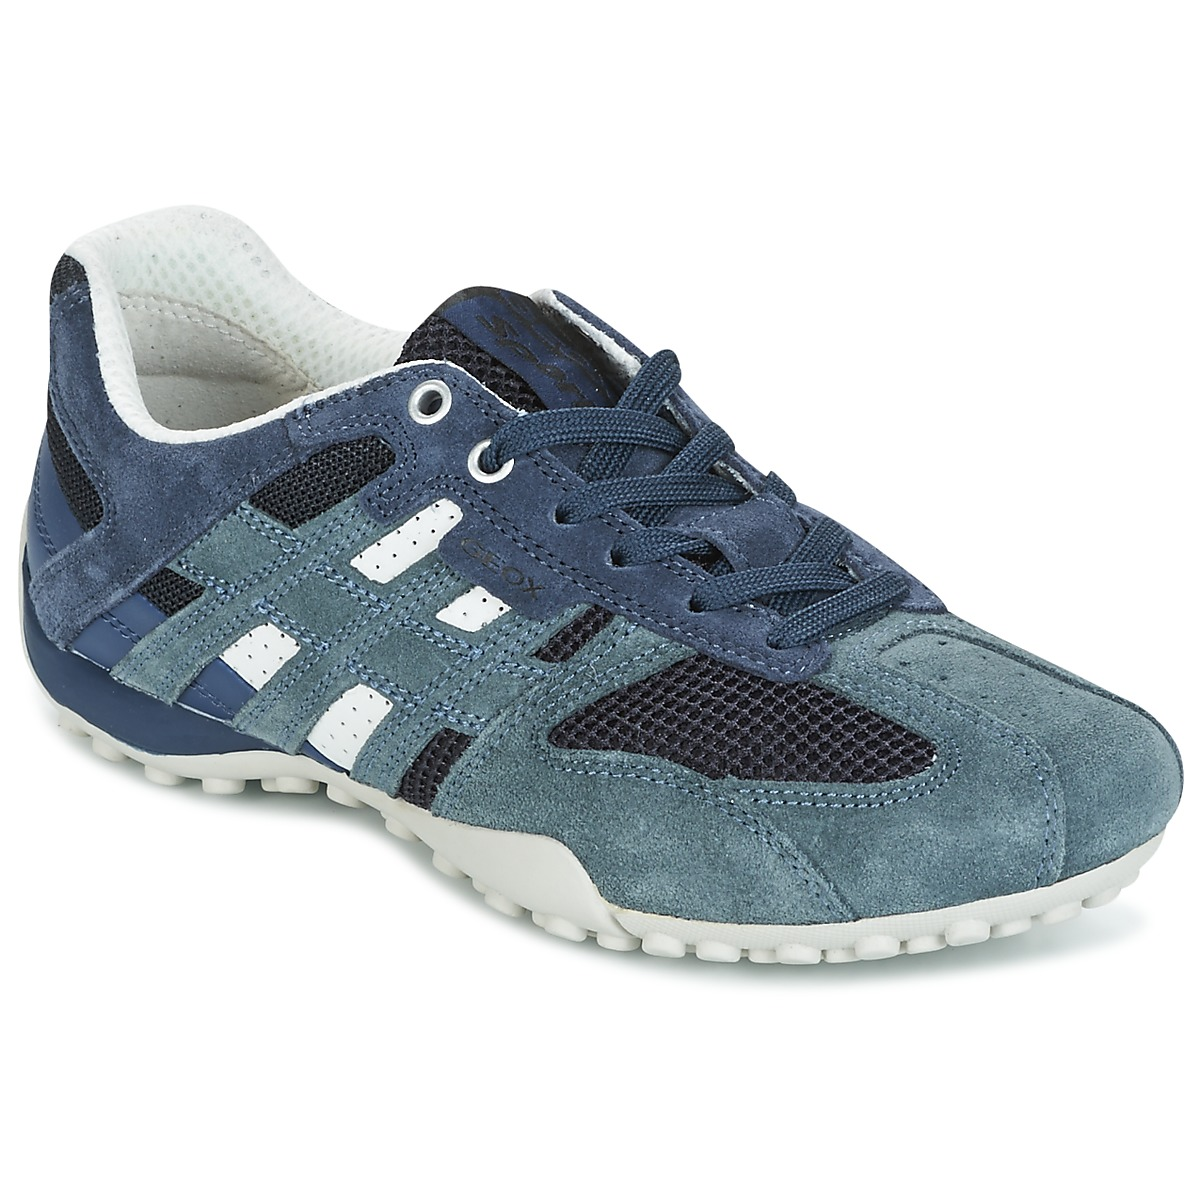 Chaussures Geox Snake Casual homme 15eDR8Wx2